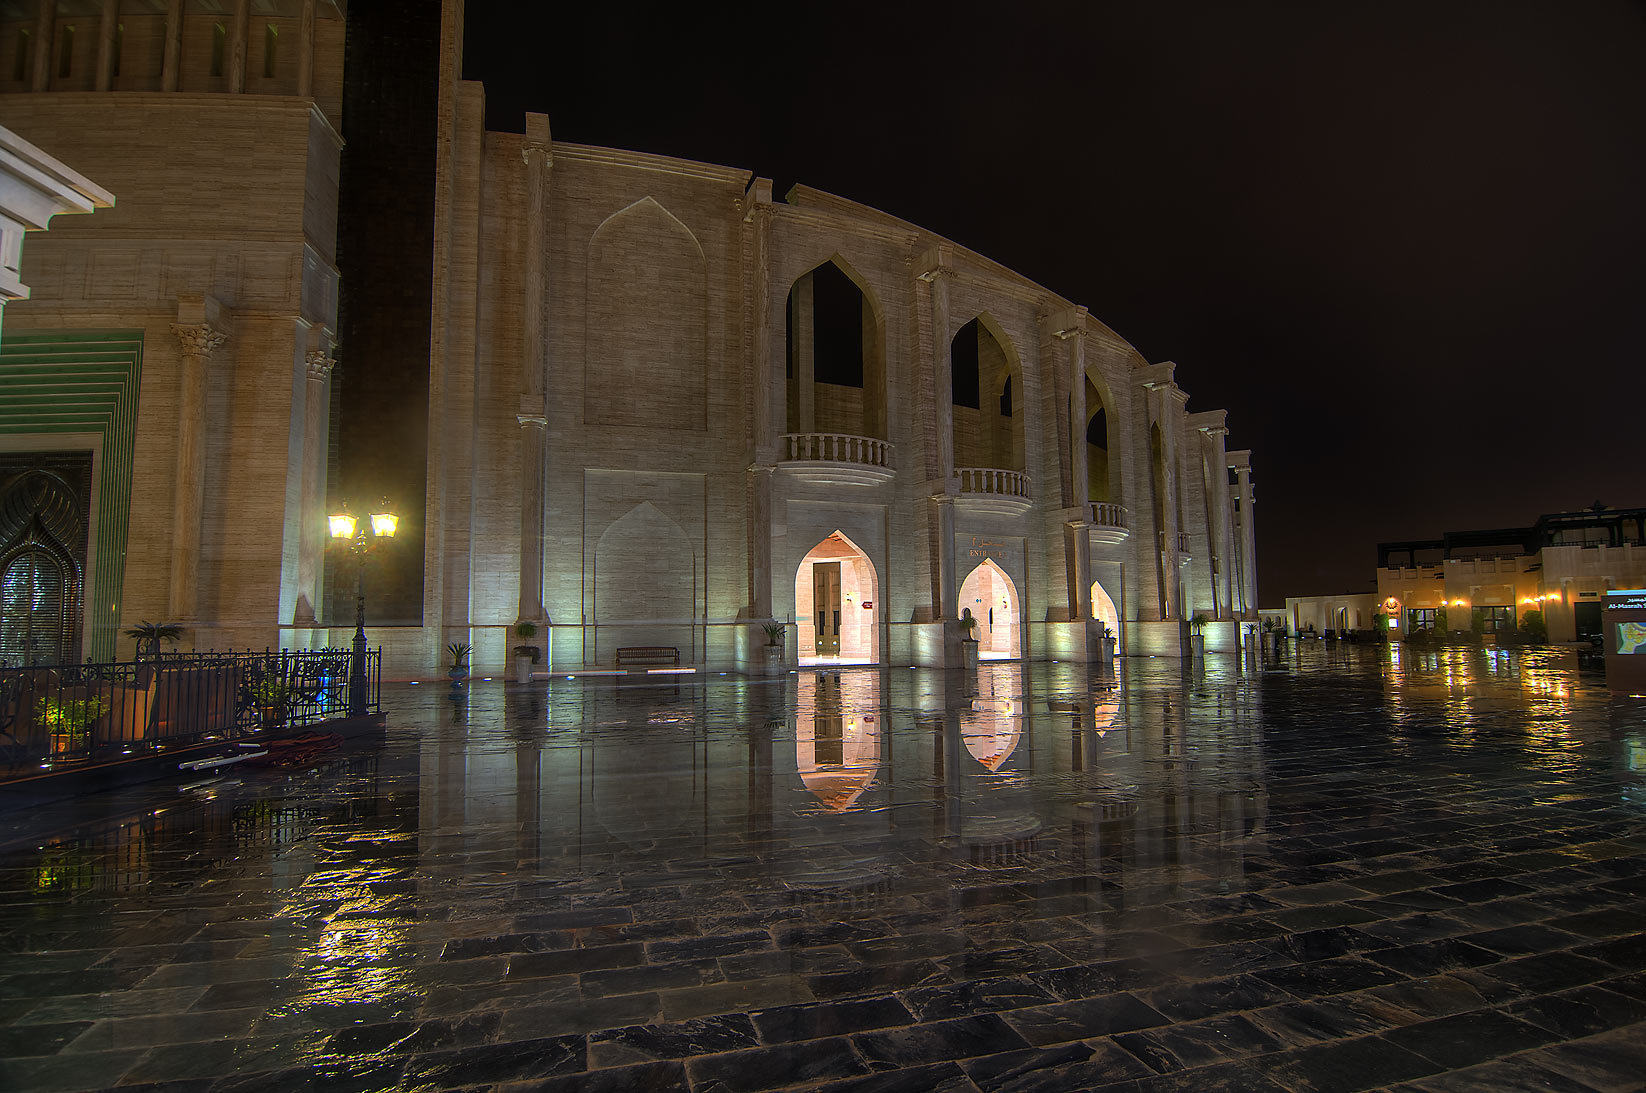 Reflections of amphitheatre in Katara Cultural Village at rain. Doha, Qatar